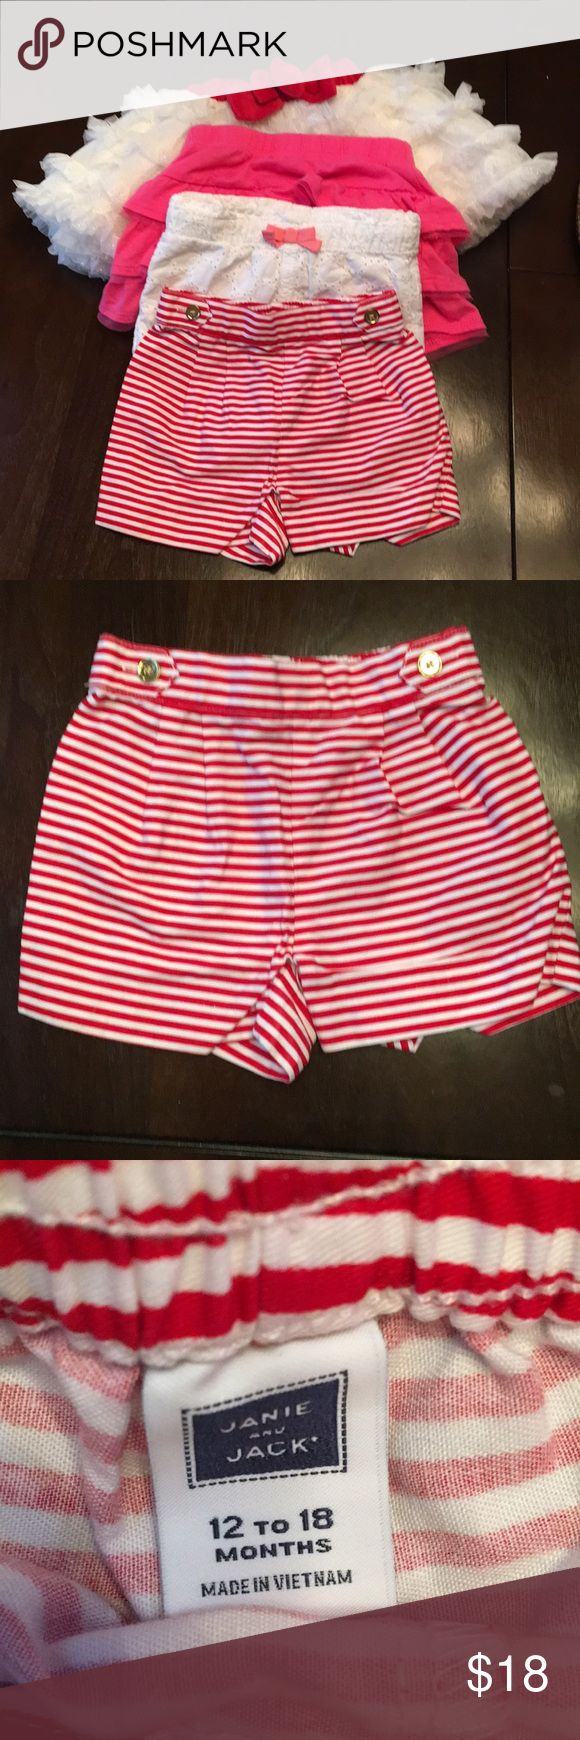 Bundle of 4 shorts/skirts 12-18 mths Janie & jack Janie and Jack red/white striped shorts. Size 12-18 months. White Cherokee shorts size 12 months. Pink layered garanimals shirt size 12 months. Disneystore brand ruffle white and gold glitter skirt. Size 12-18 months. All items in excellent condition, only worn one time! Janie and Jack Bottoms